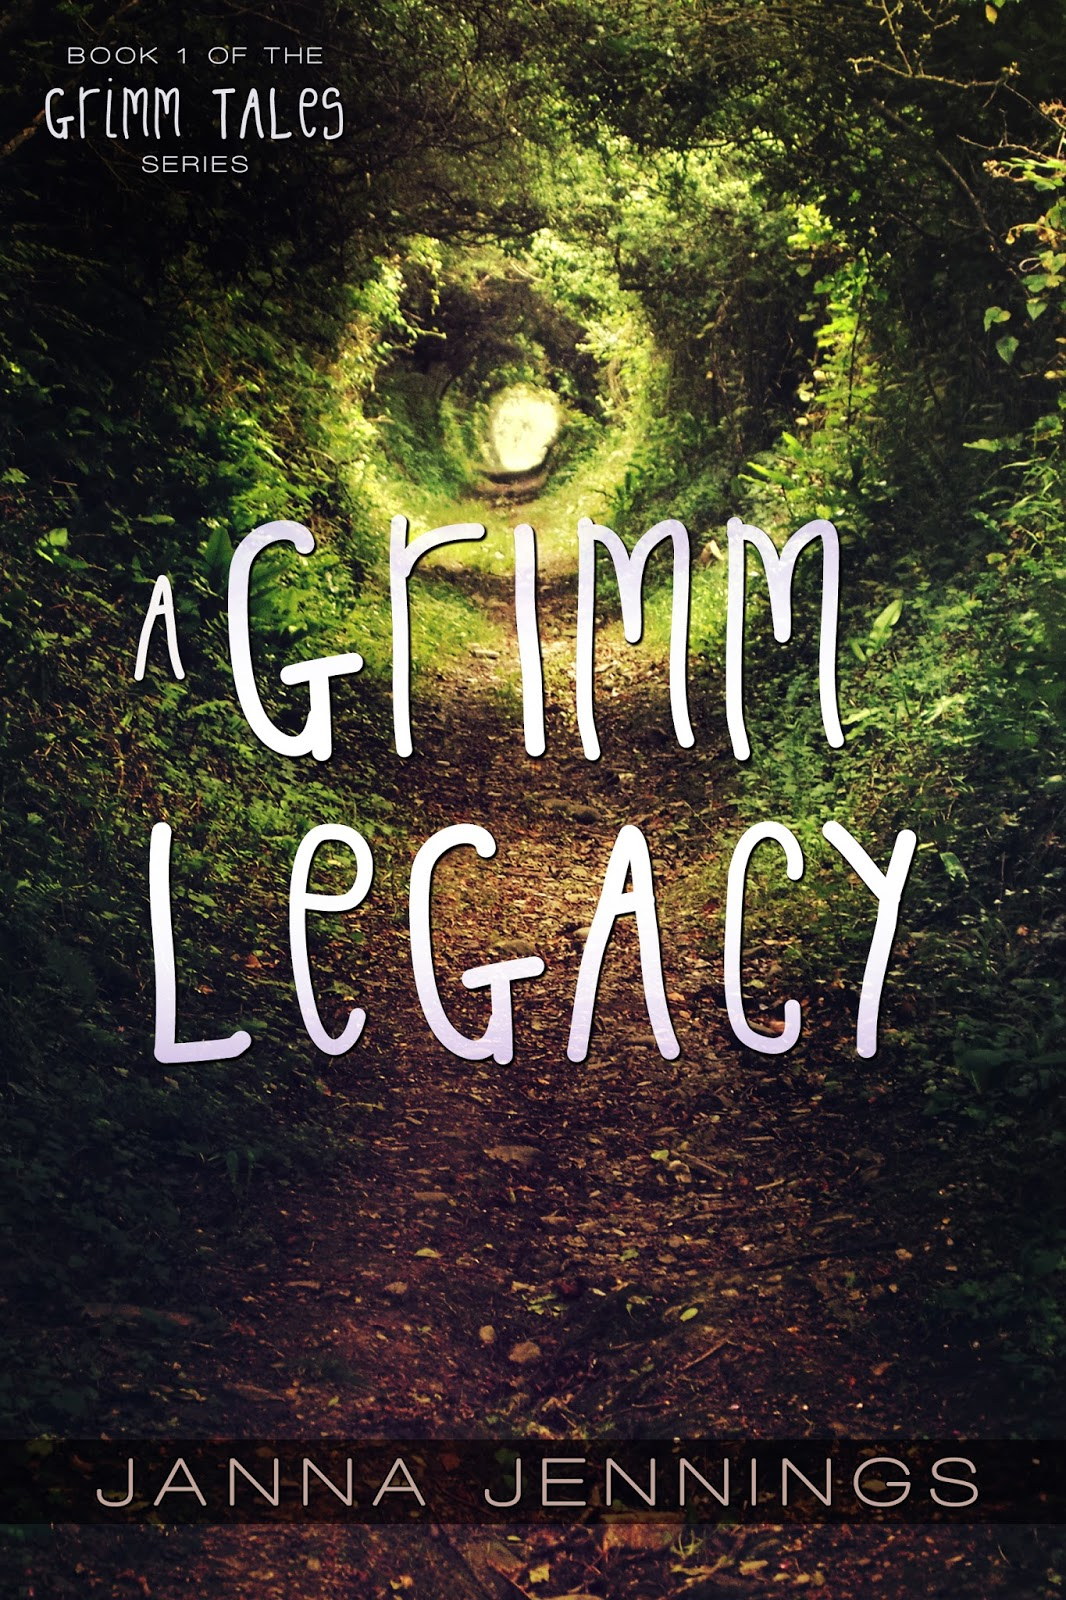 A GRIMM LEGACY COVER REVEAL